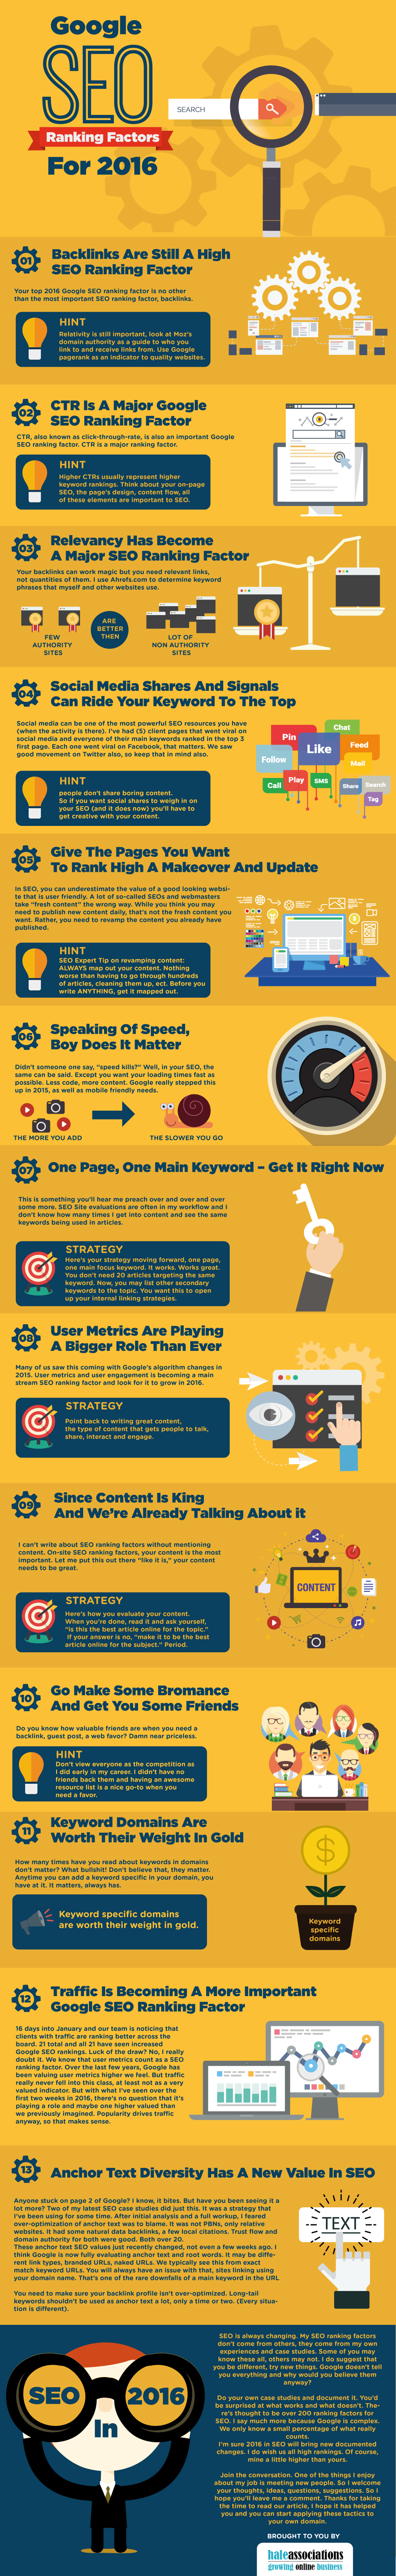 Google SEO Ranking Factors for 2016 #Infographic